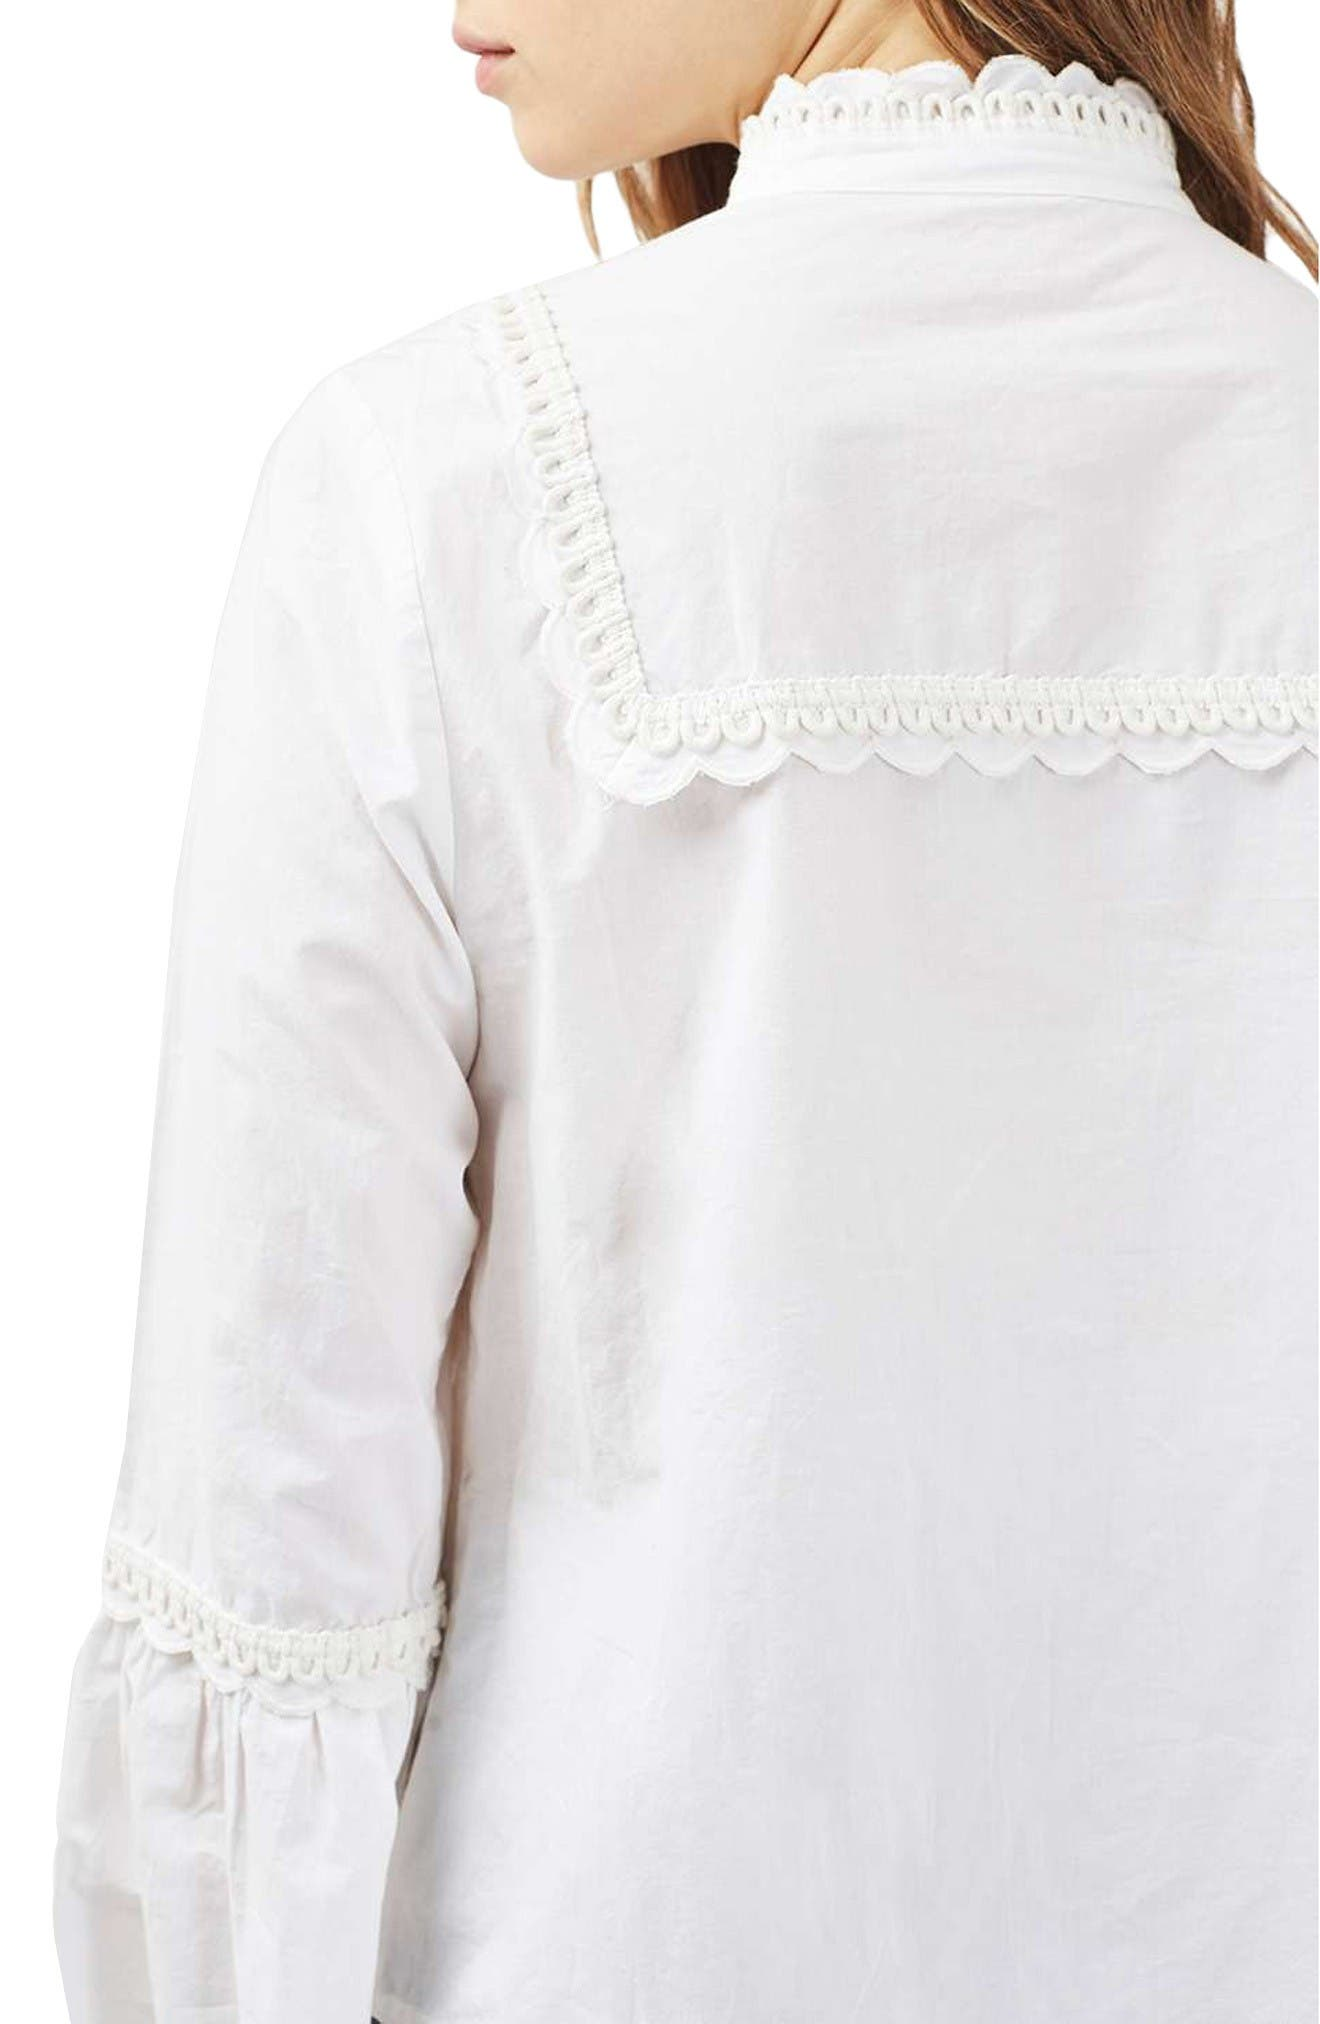 Alternate Image 3  - Topshop Cotton Poplin Ruffle Blouse